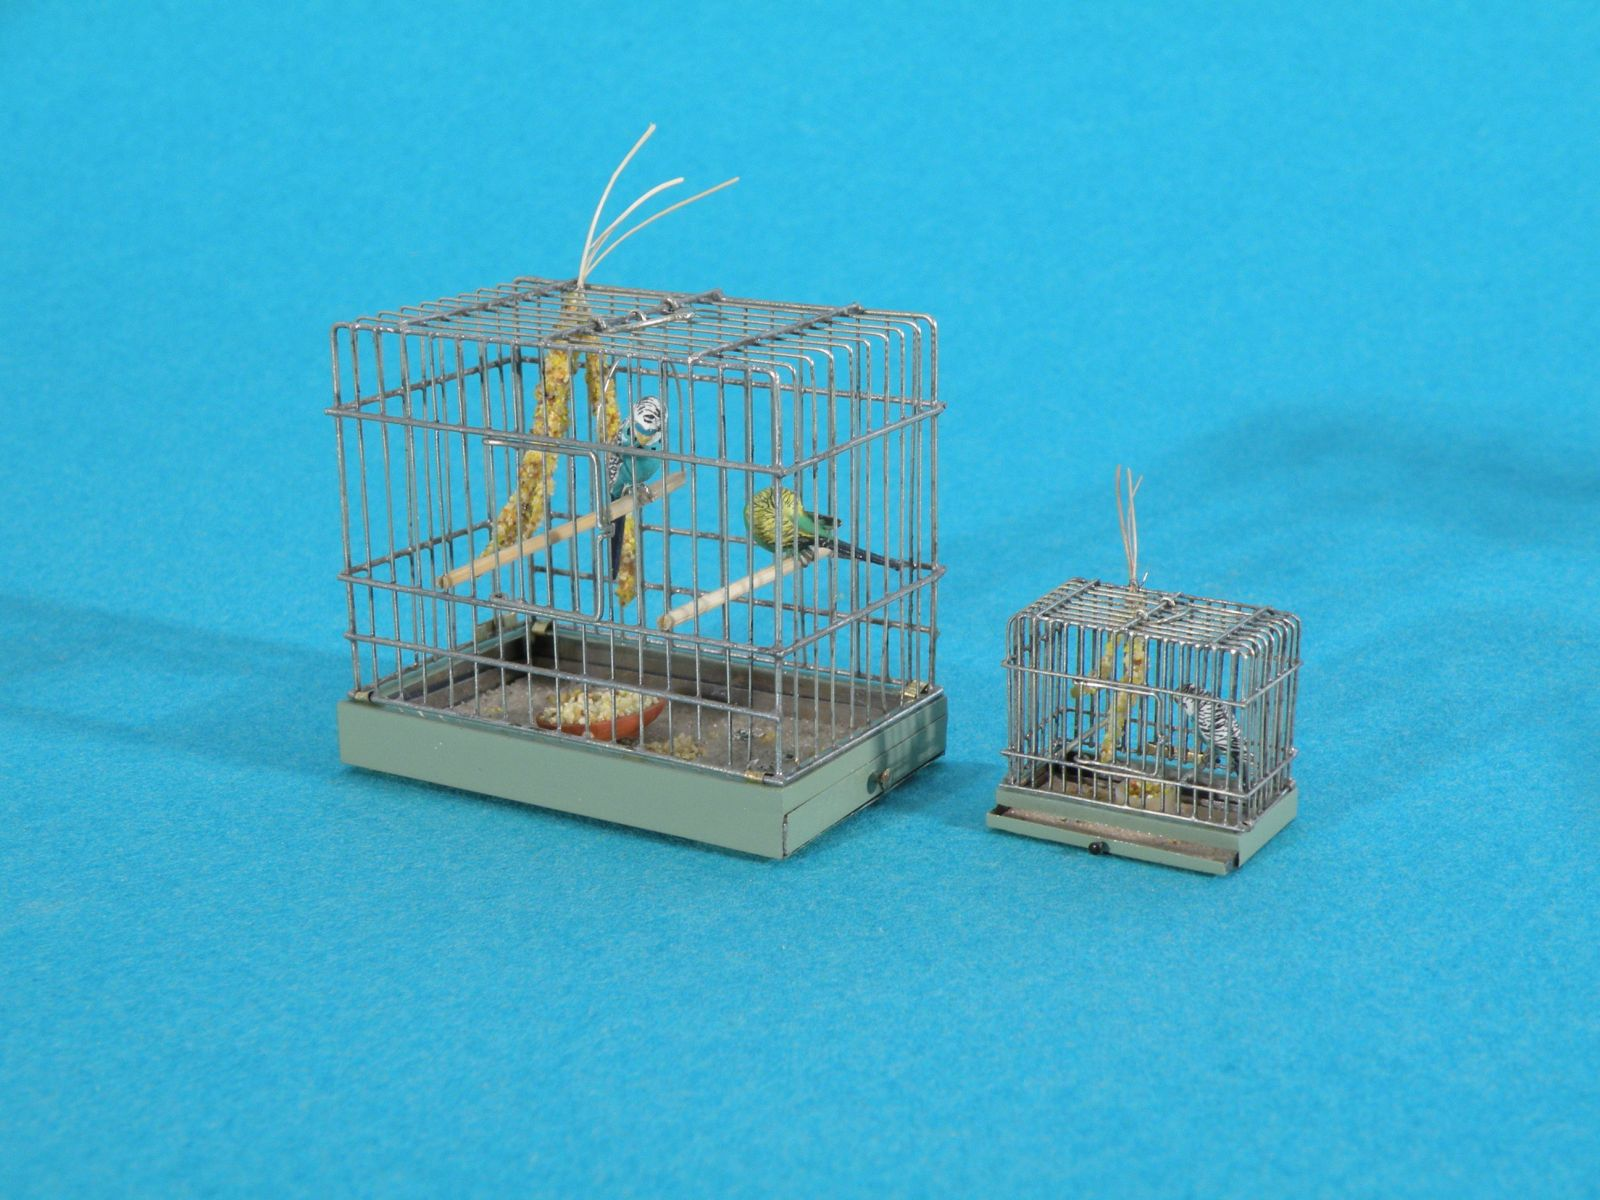 "1"" & 1/2"" scale Bird Cage by Ursula Dyrbye-Skovsted"